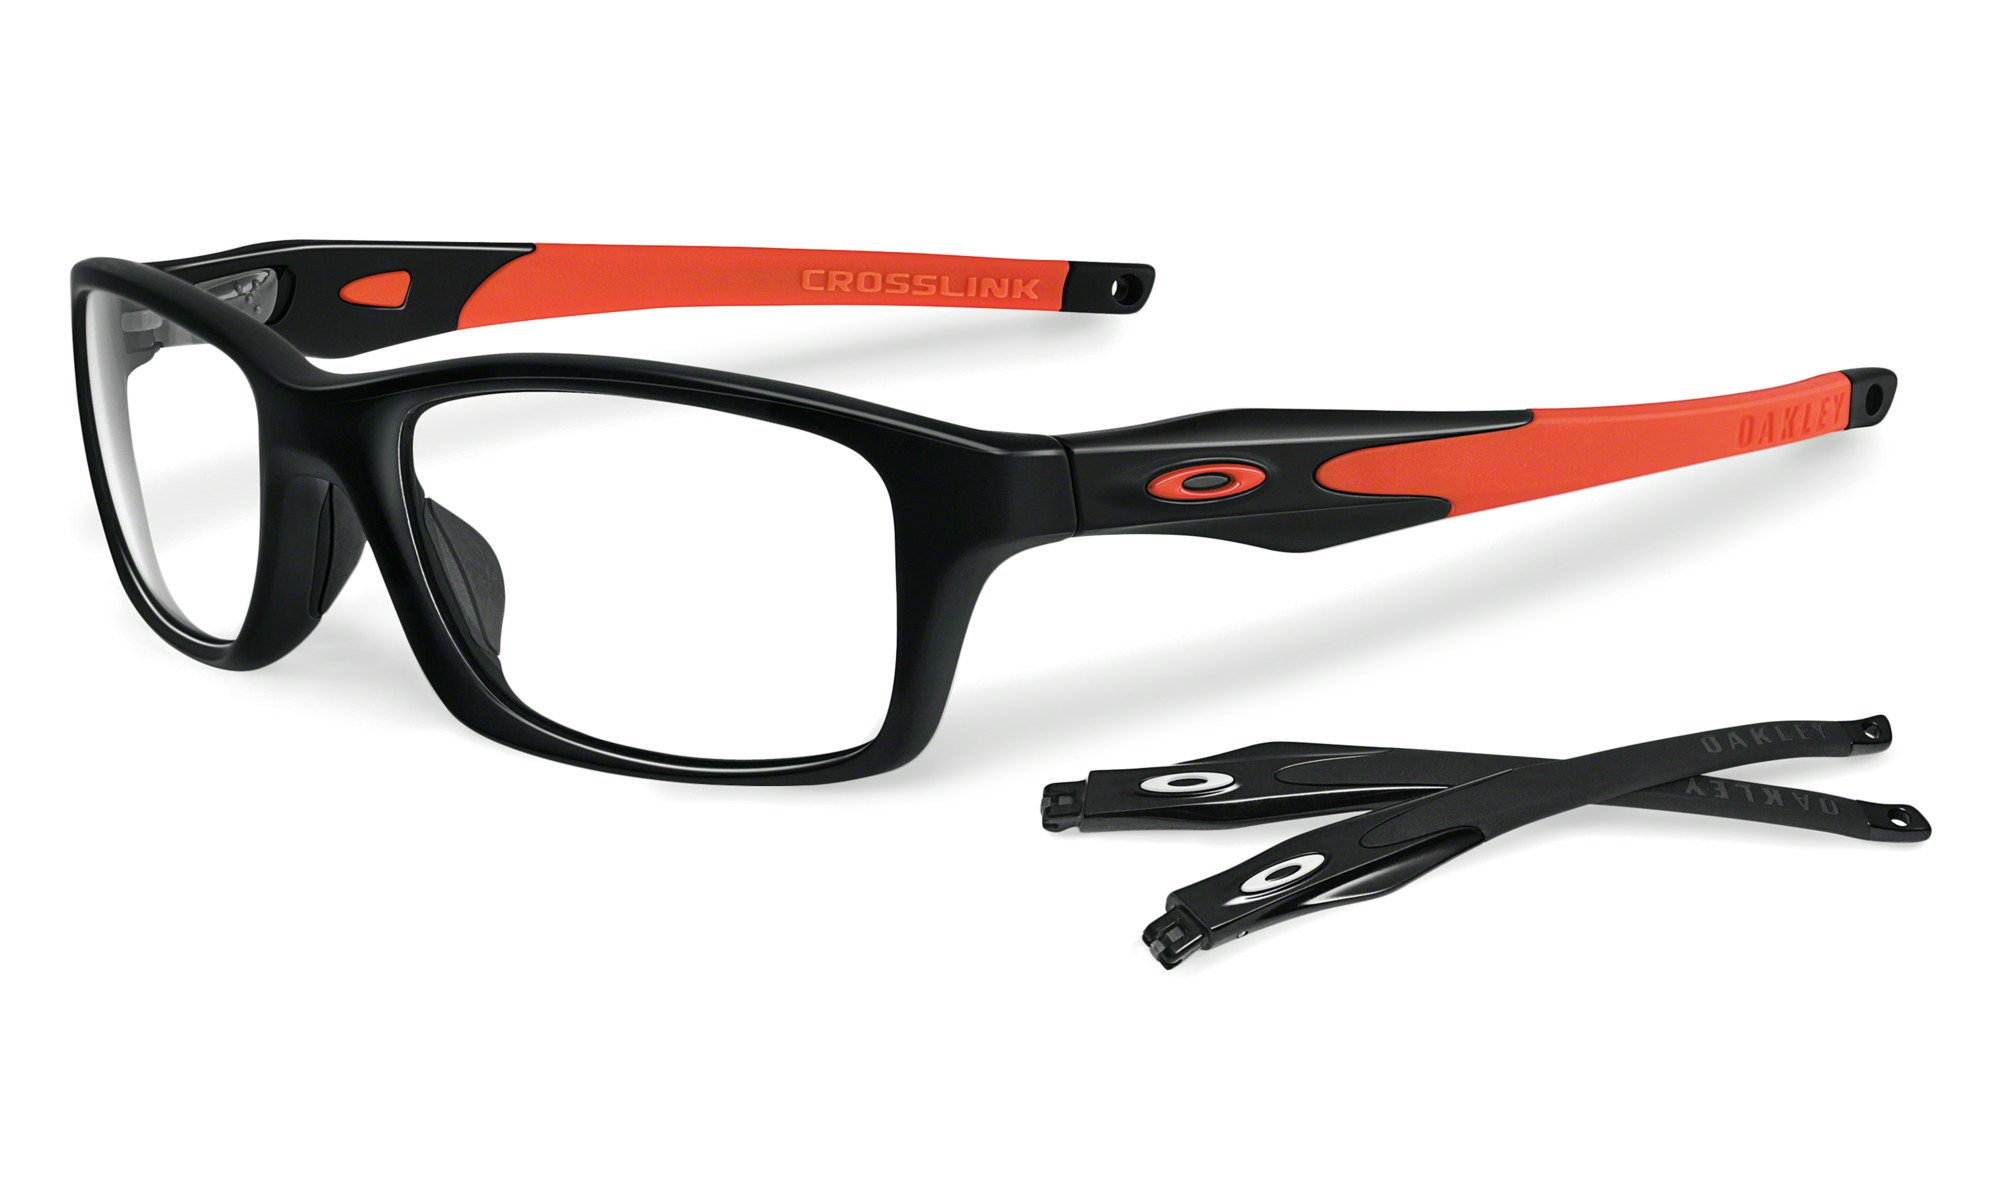 f3a62e9af4 Be the First to Review the Oakley Crosslink Pearl Team Cardinal  Prescription Eyeglasses OX8027-0453 — Page 1